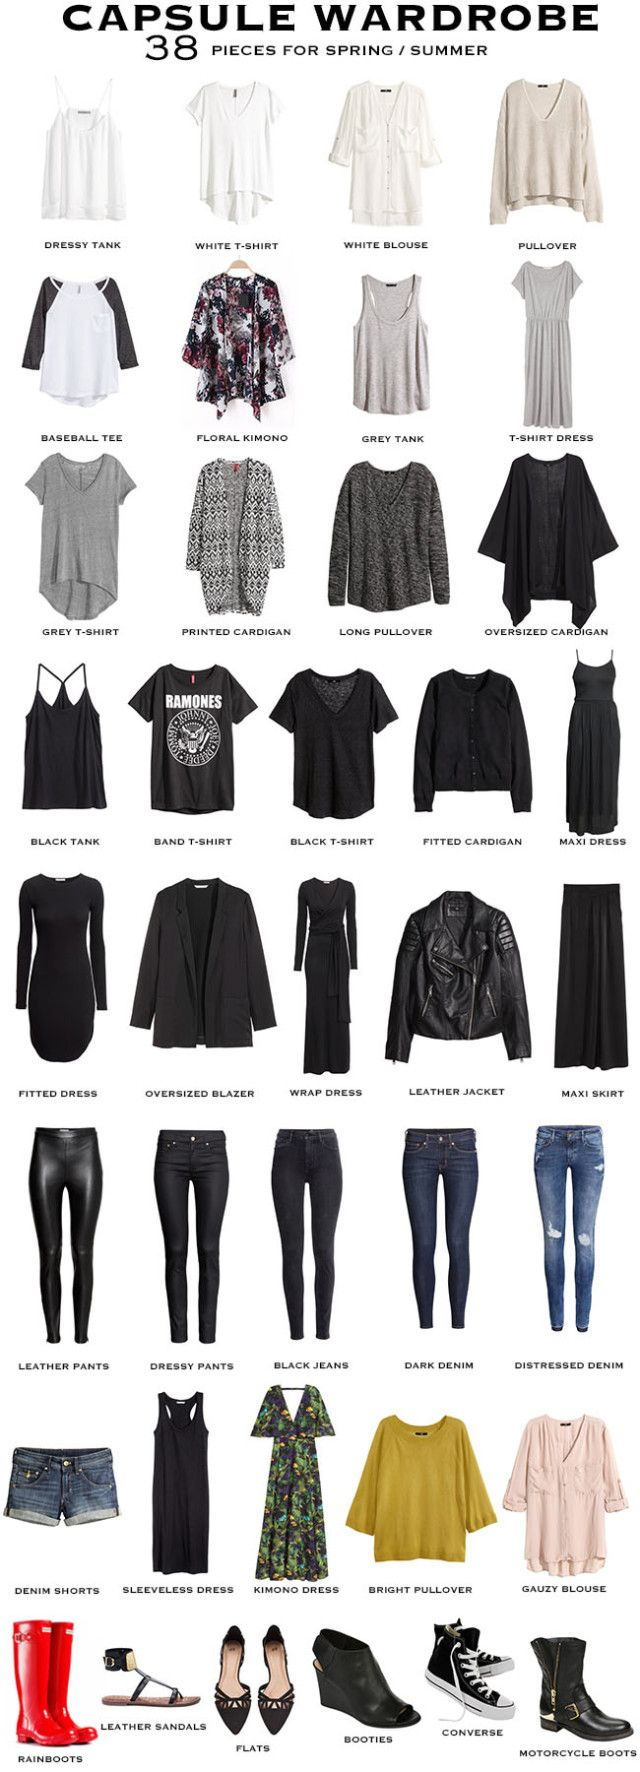 I had to make a small adjustment to my Spring/Summer capsule wardrobe due to the fit of some items. This is the updated version. #capsule #capsulewardrobe